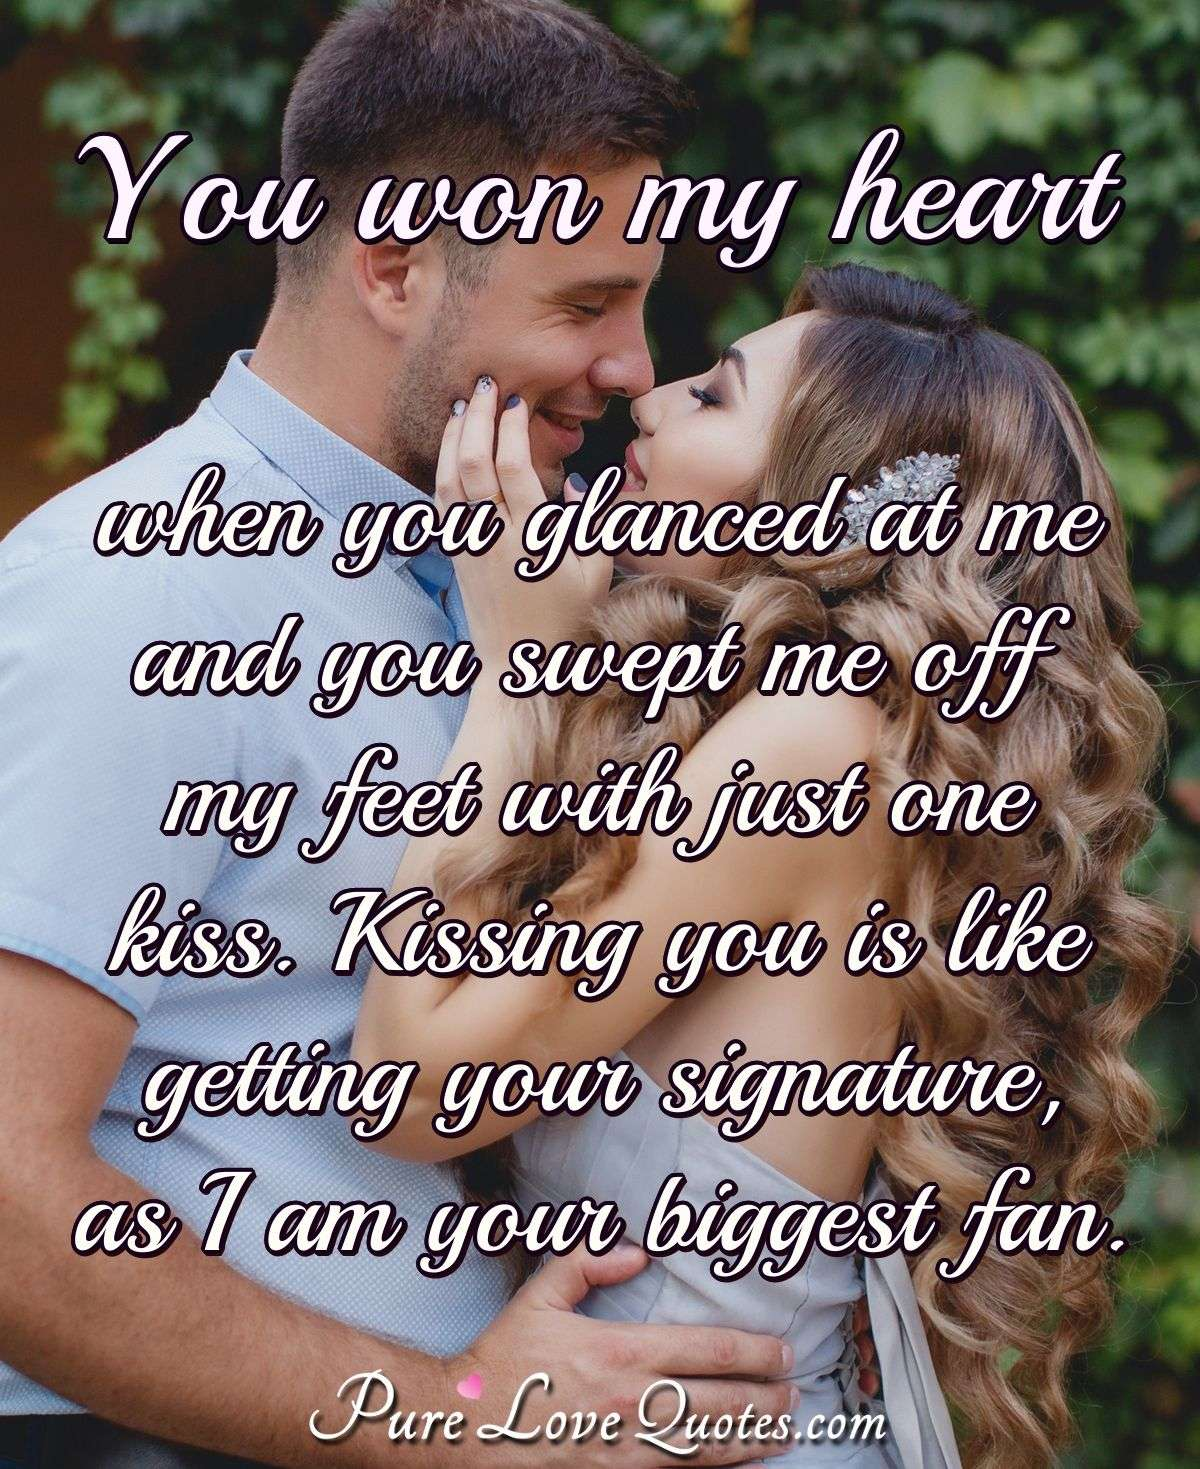 You won my heart when you glanced at me and you swept me off my feet with just one kiss. Kissing you is like getting your signature, as I am your biggest fan. - PureLoveQuotes.com